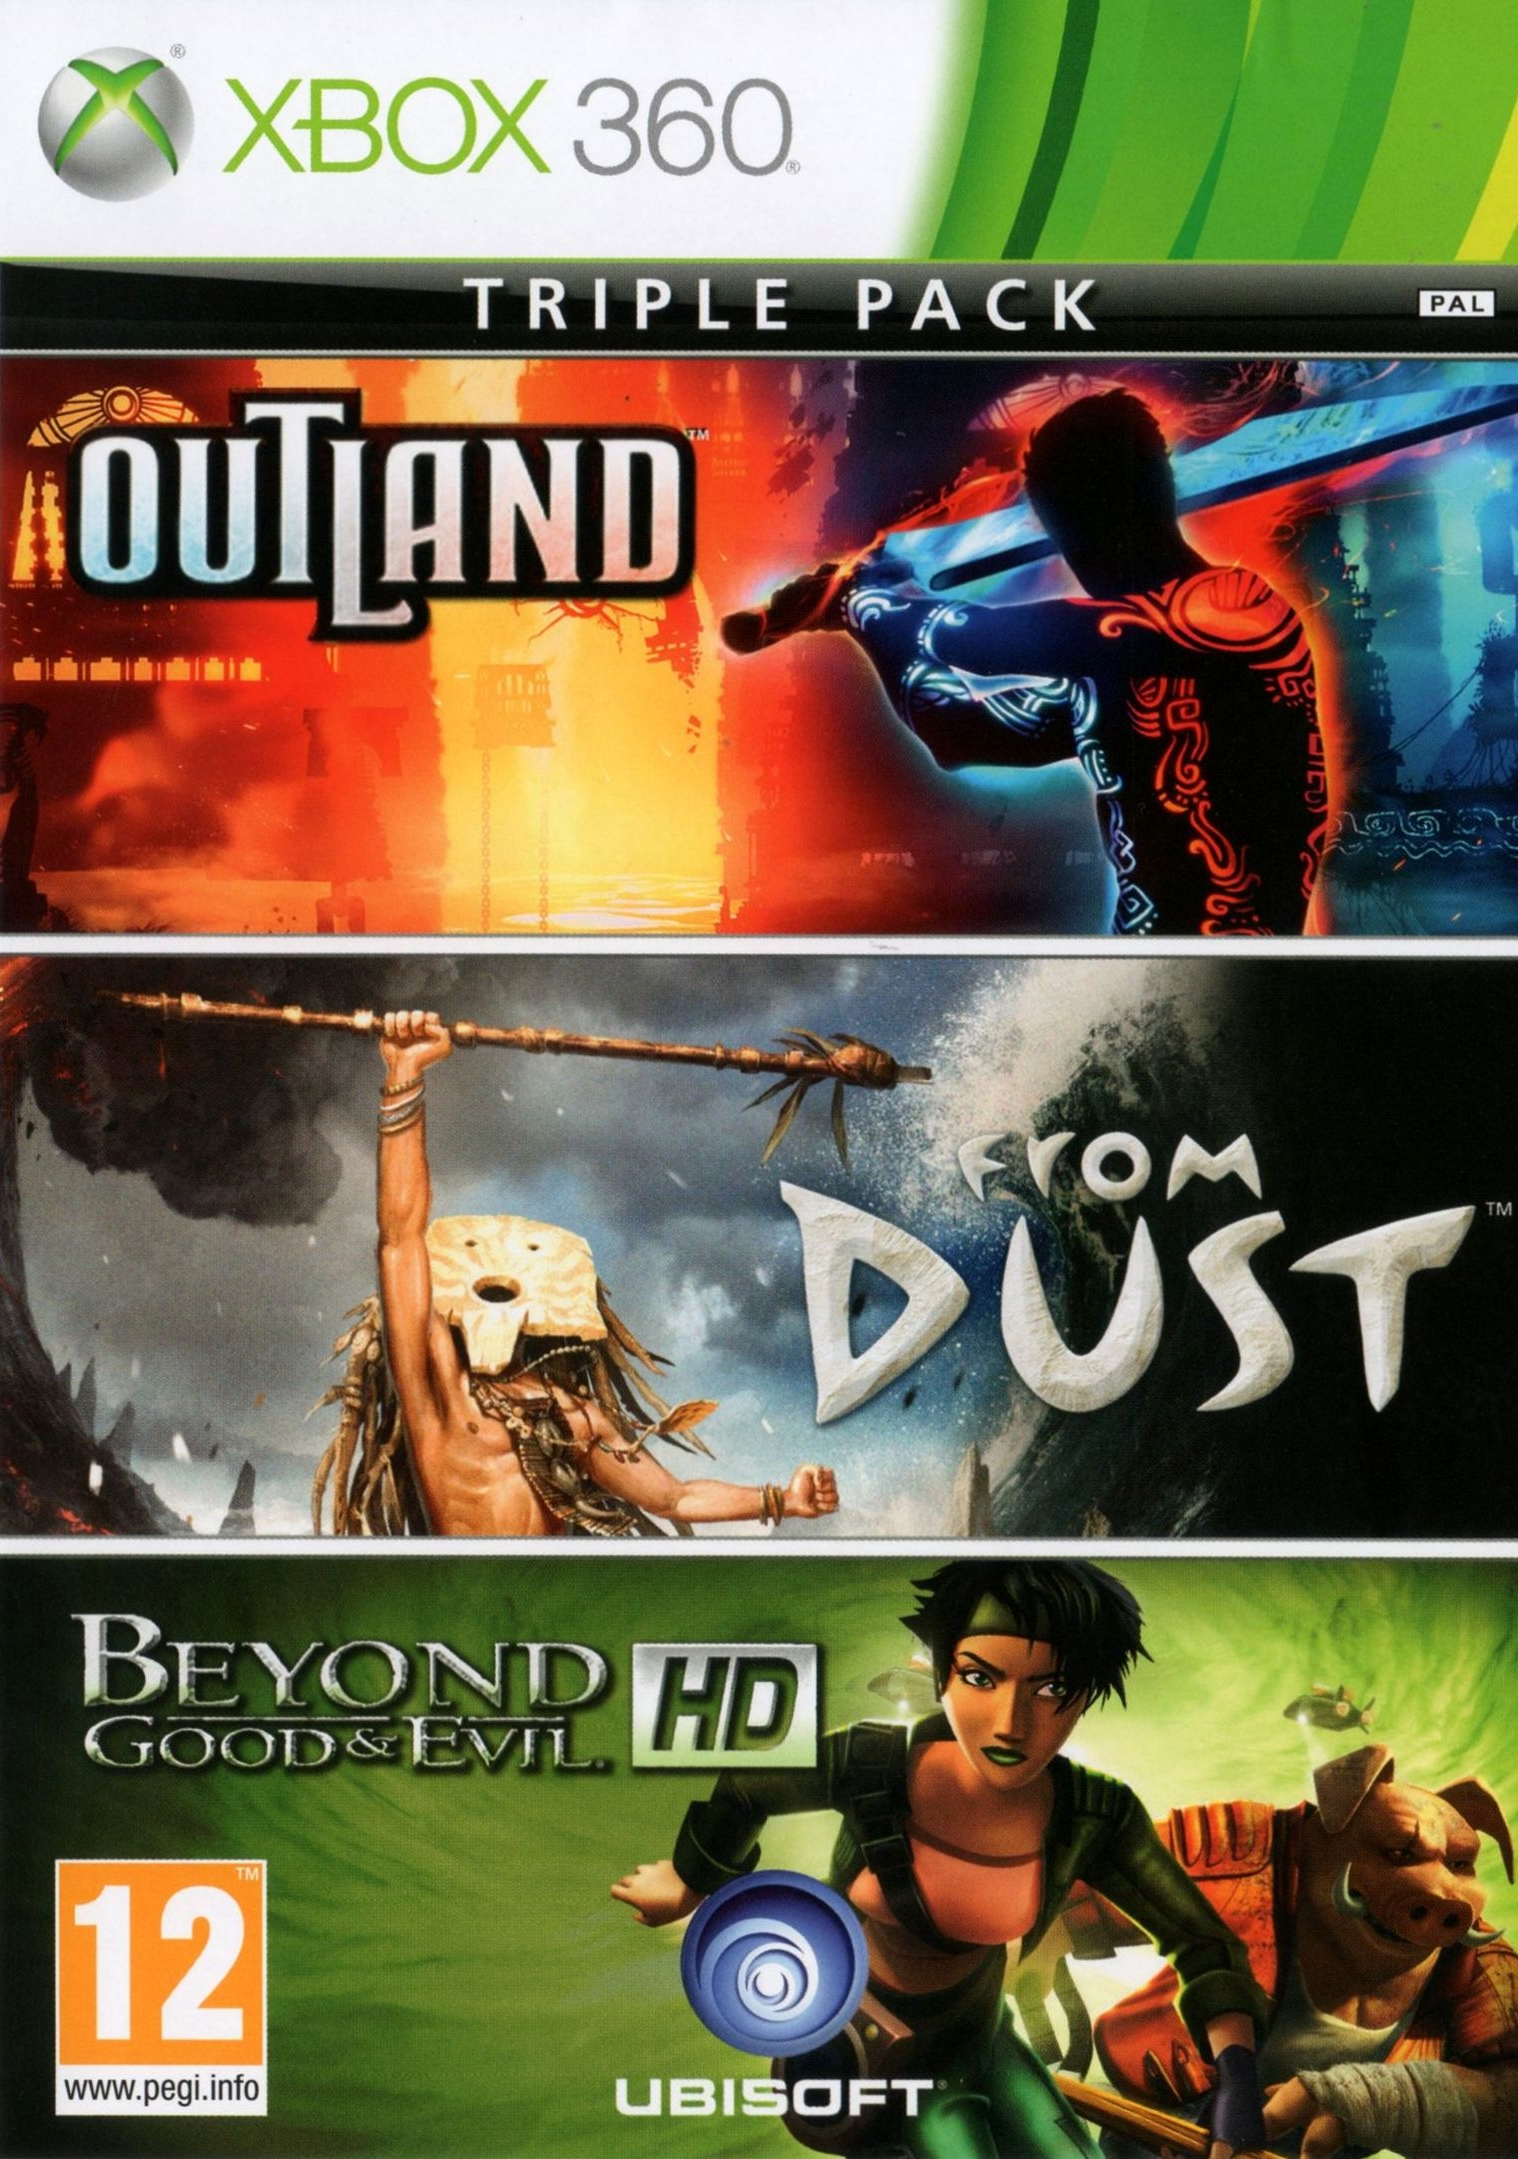 Комплект: Outland + From Dust + Beyond Good & Evil HD